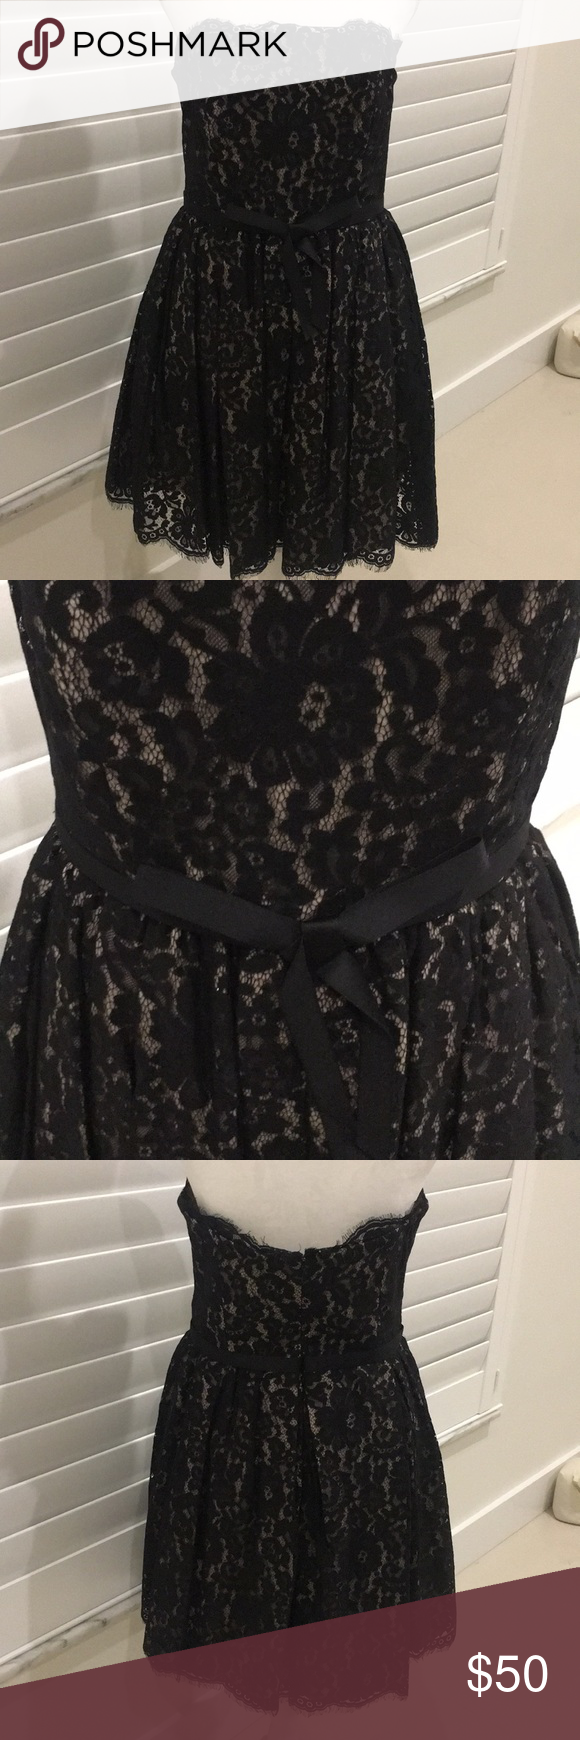 Neiman Marcus For Target Cocktail Dress Size 12 Designer Dresses Cocktail Dress Dresses [ 1740 x 580 Pixel ]